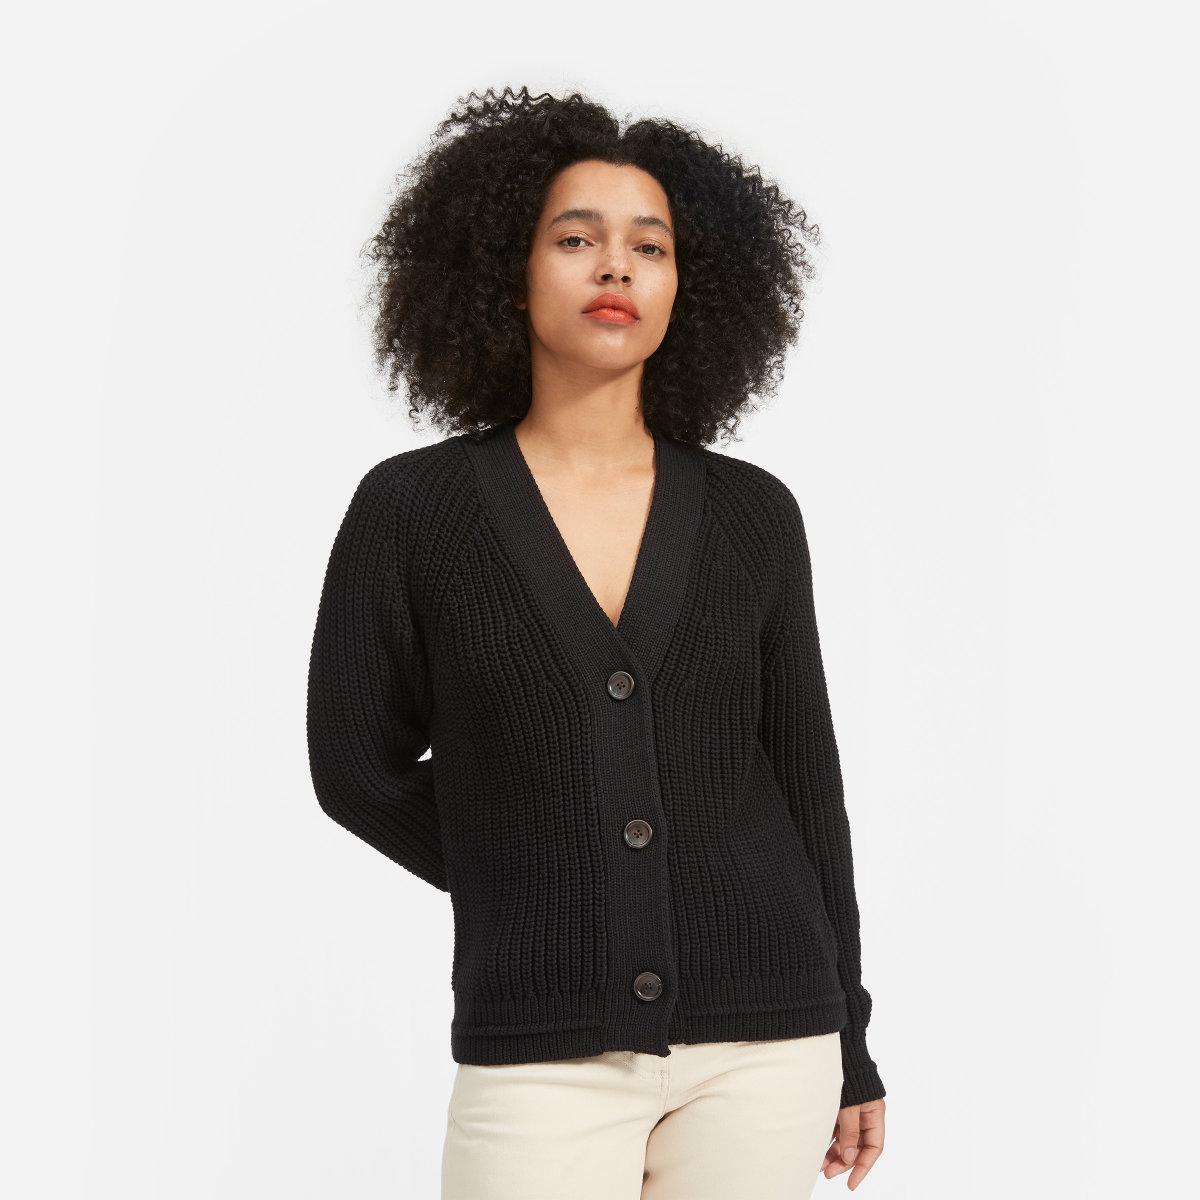 THE TEXTURE COTTON CARDIGAN $98 -